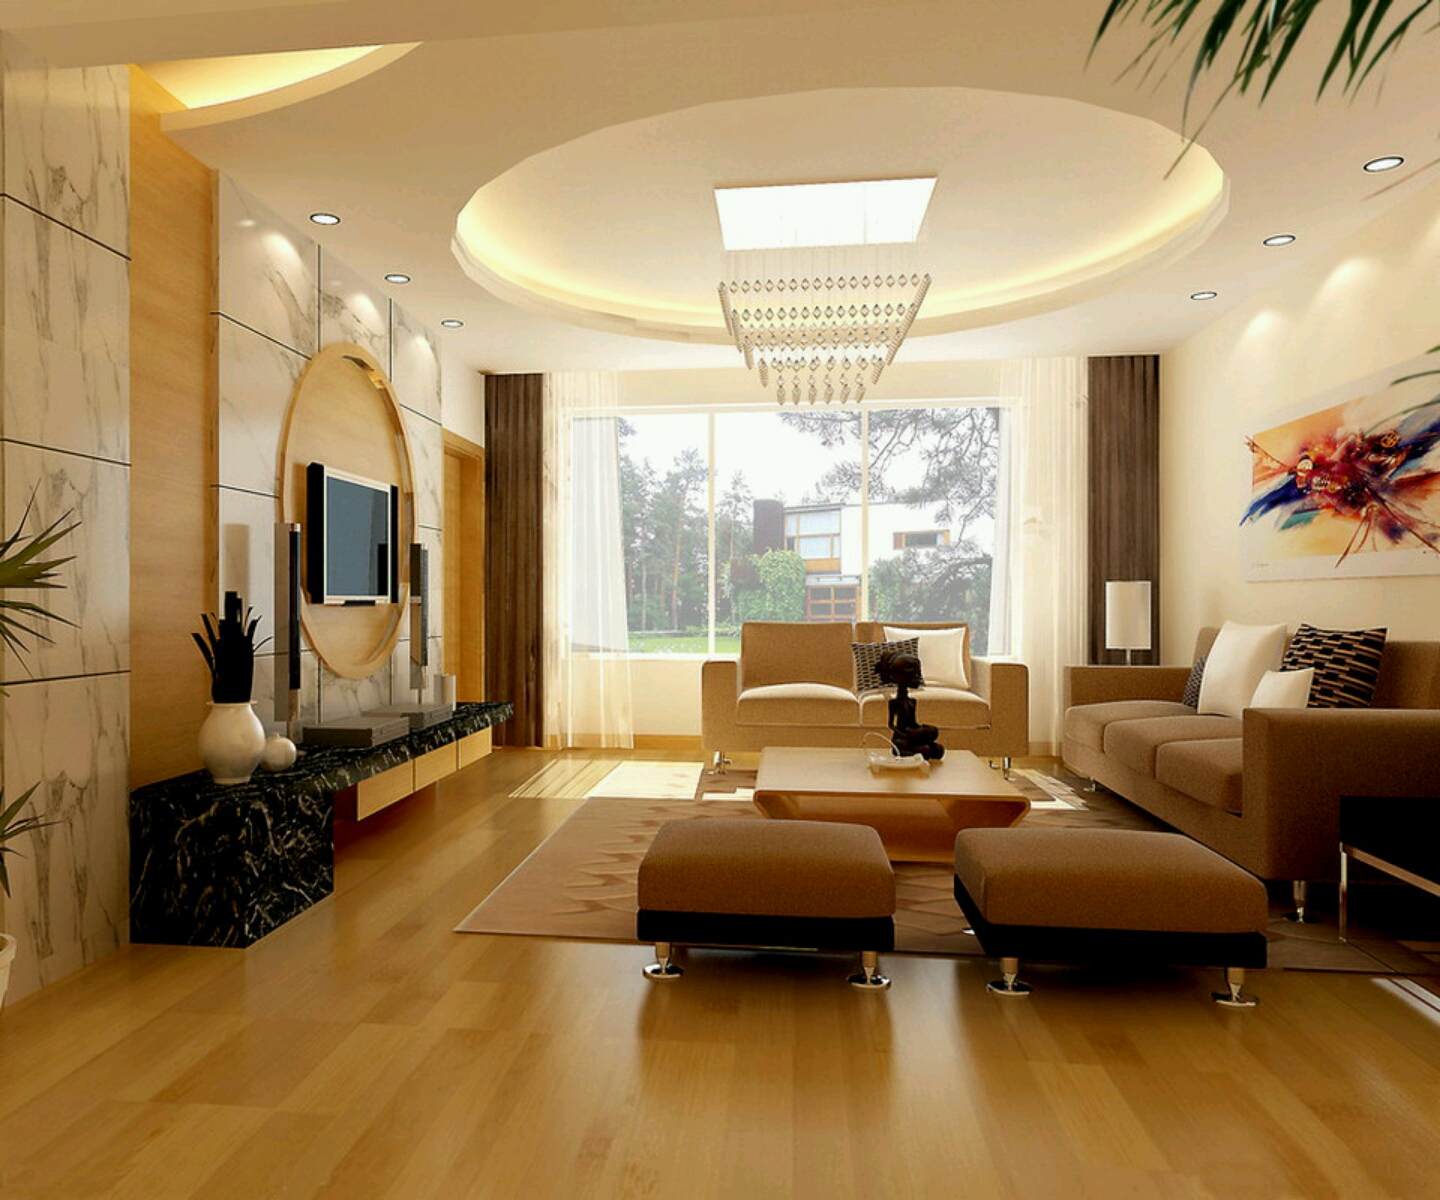 Modern interior decoration living rooms ceiling designs for Sitting room inspiration